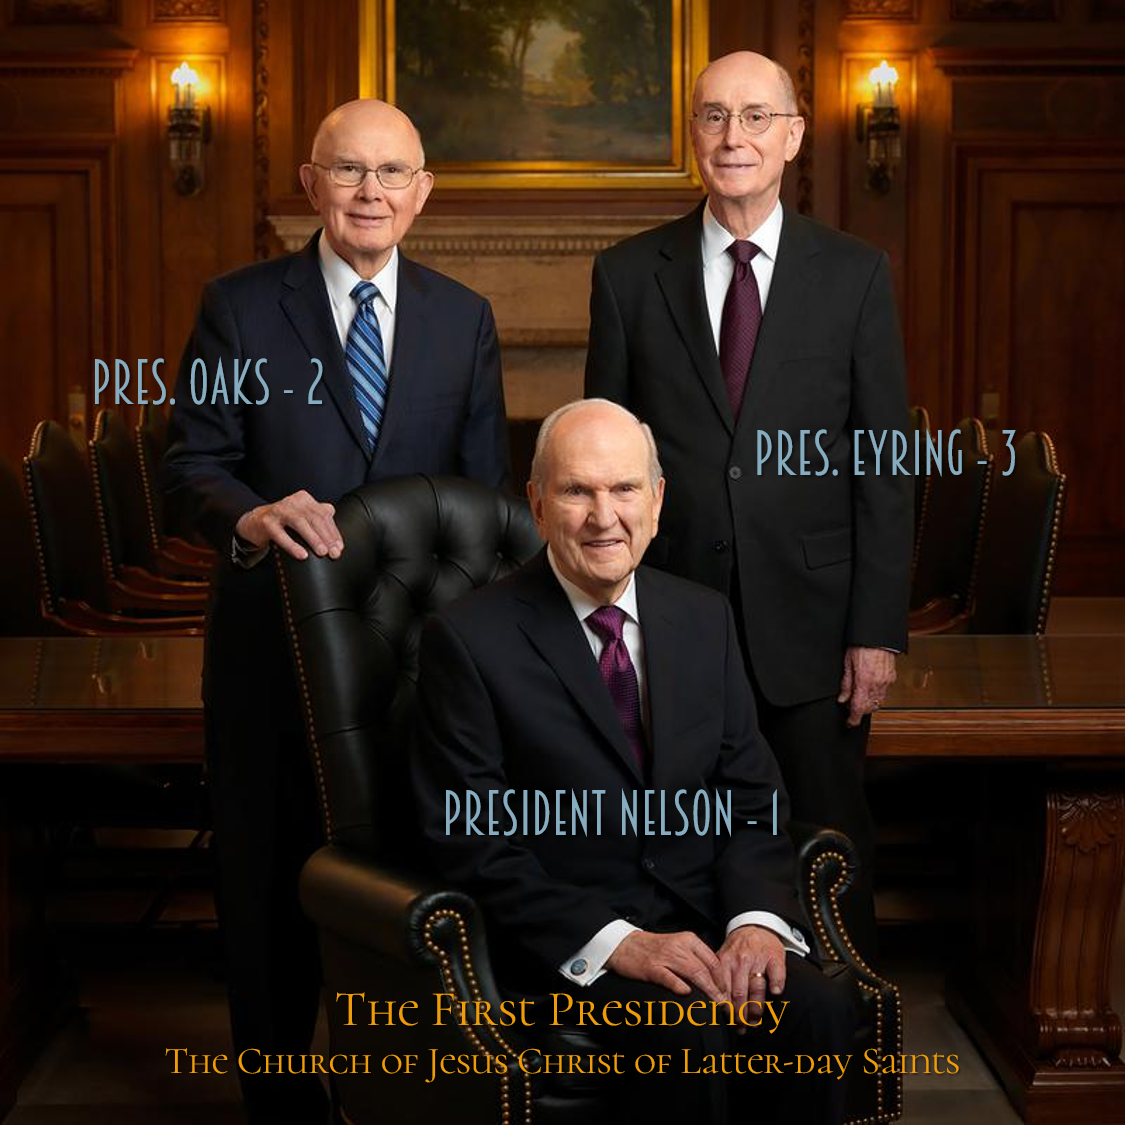 The First Presidency Of The Church Of Jesus Christ Of